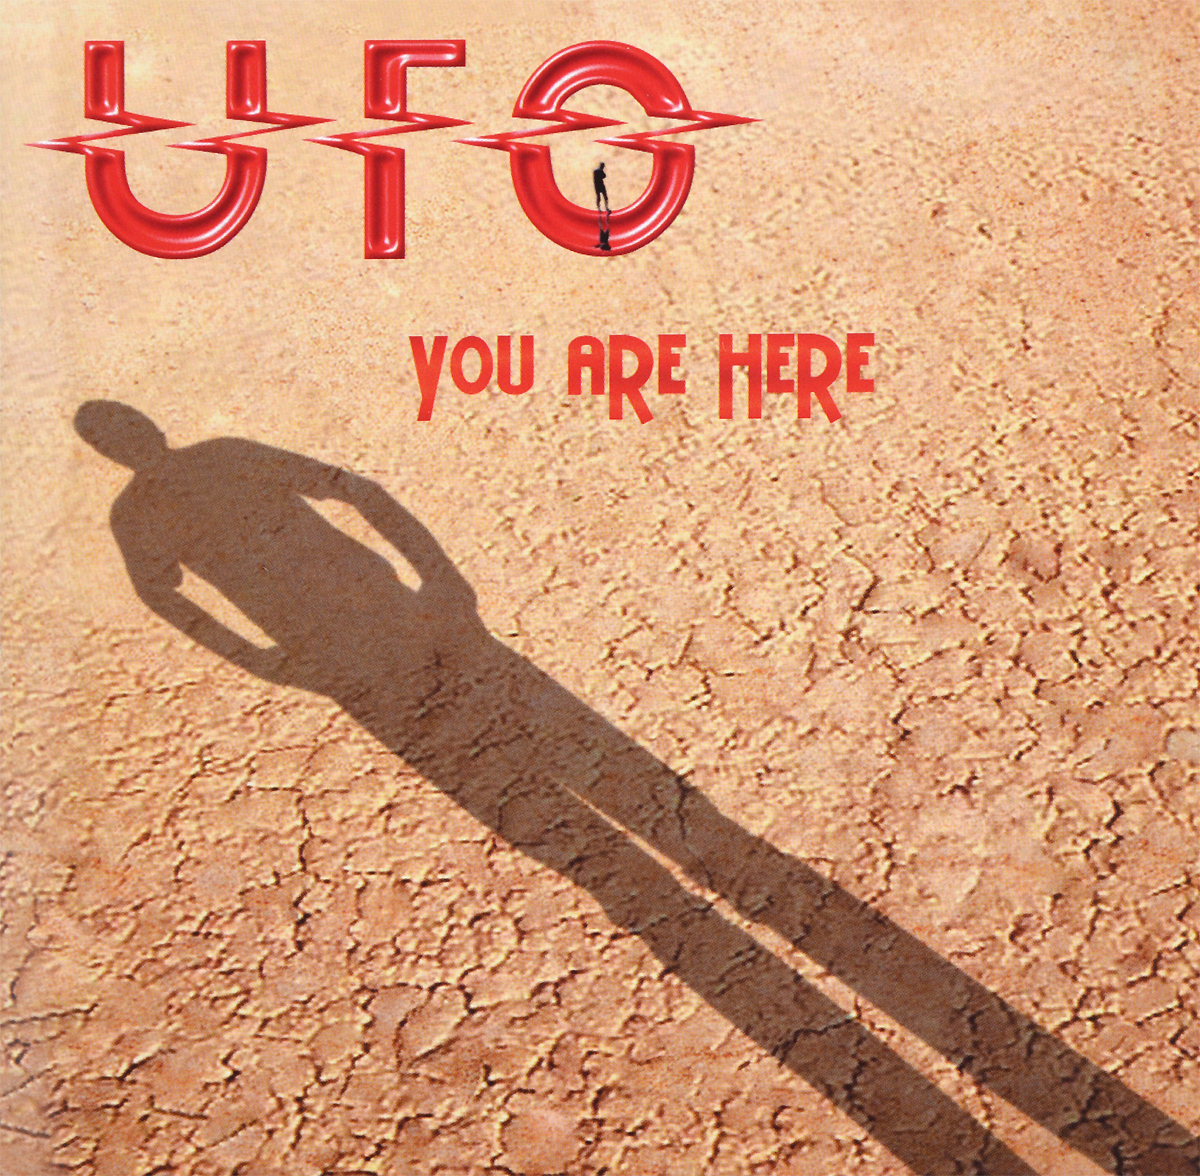 UFO UFO. You Are Here jtc 1201